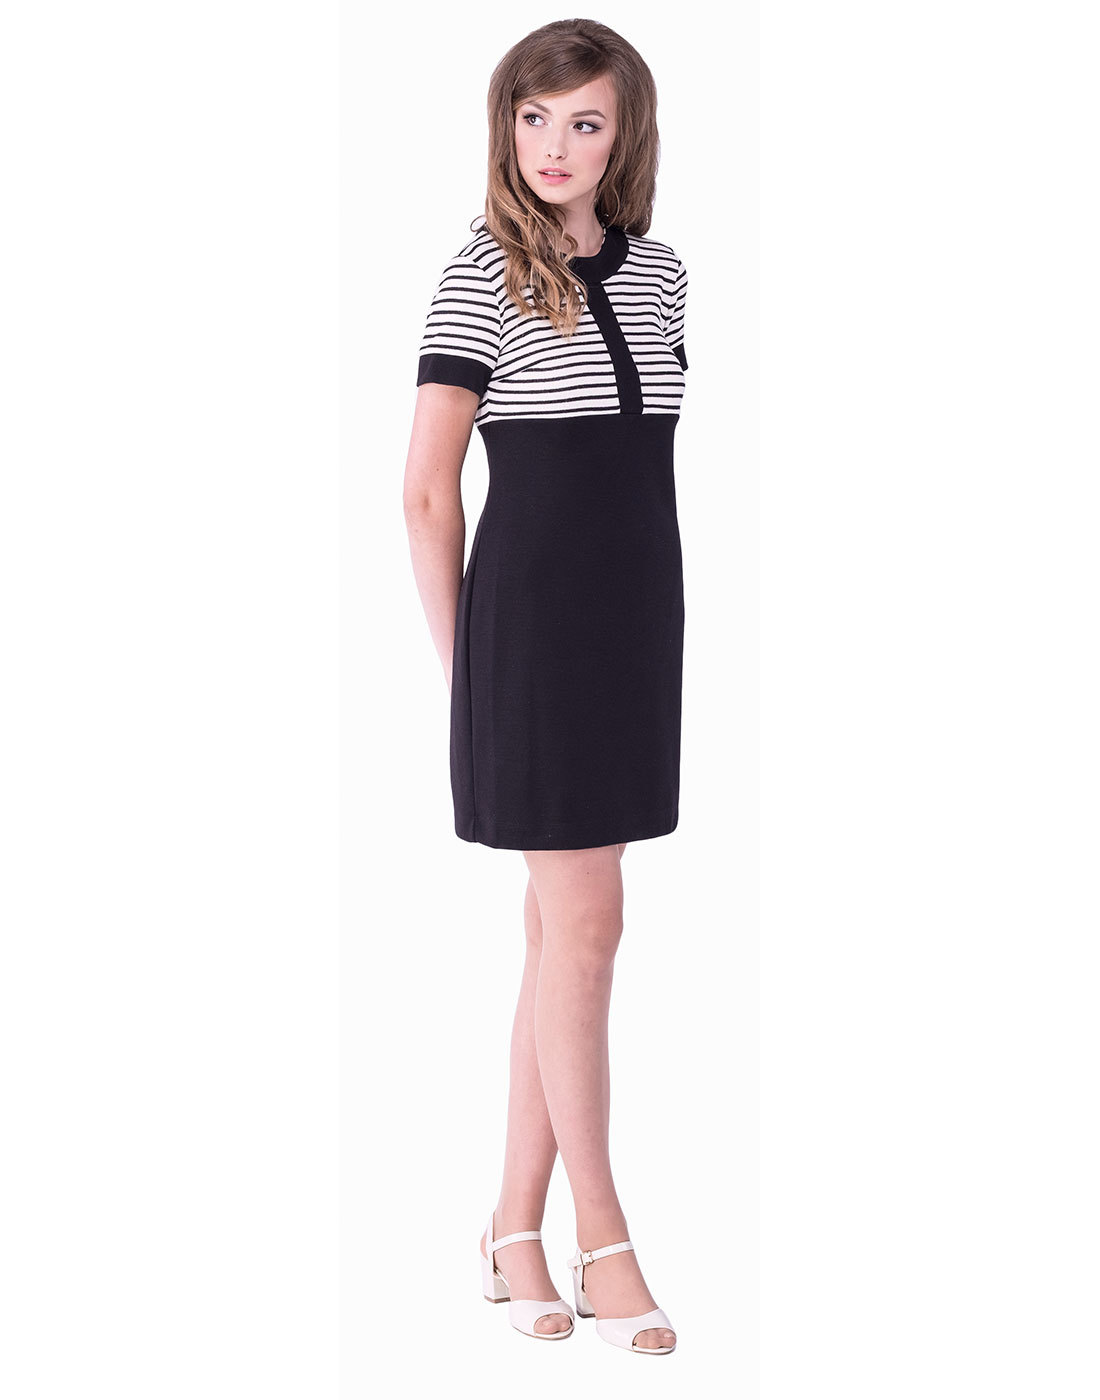 MARMALADE 1960s Mod Nautical Stripe Panel Dress